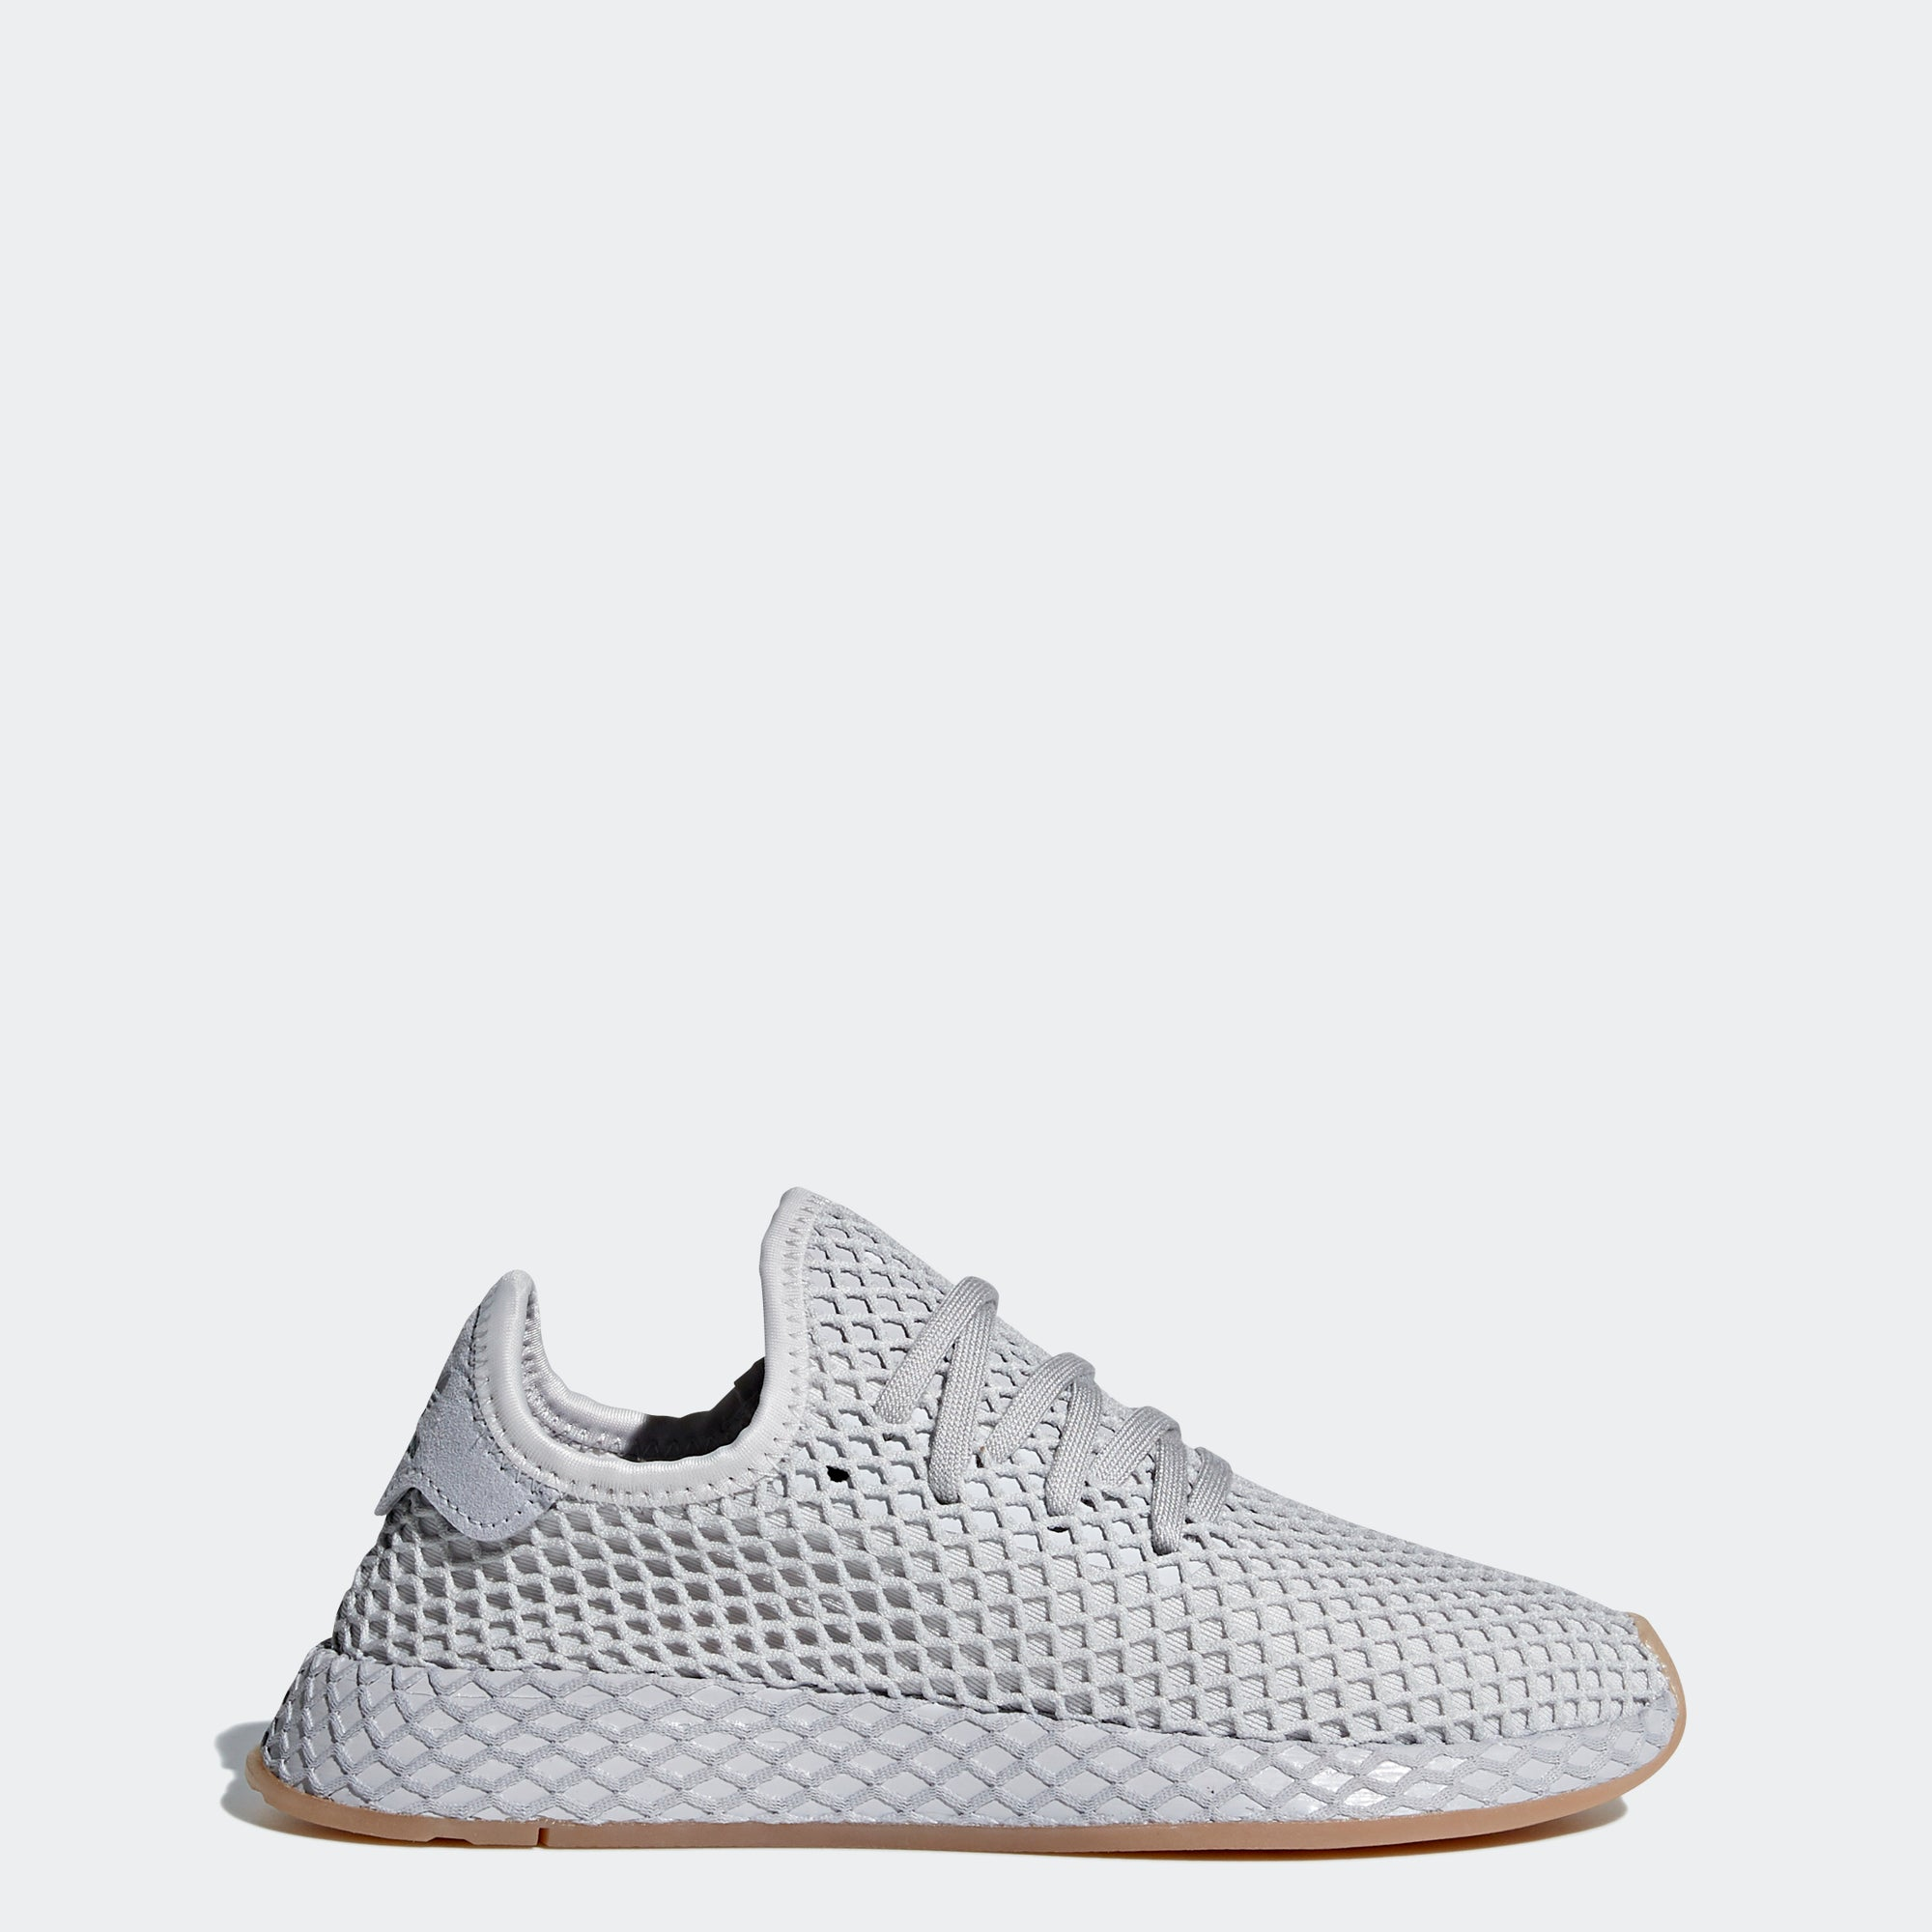 1d6041379 Kid s adidas Originals Deerupt Runner Shoes All Gray CQ2936 ...